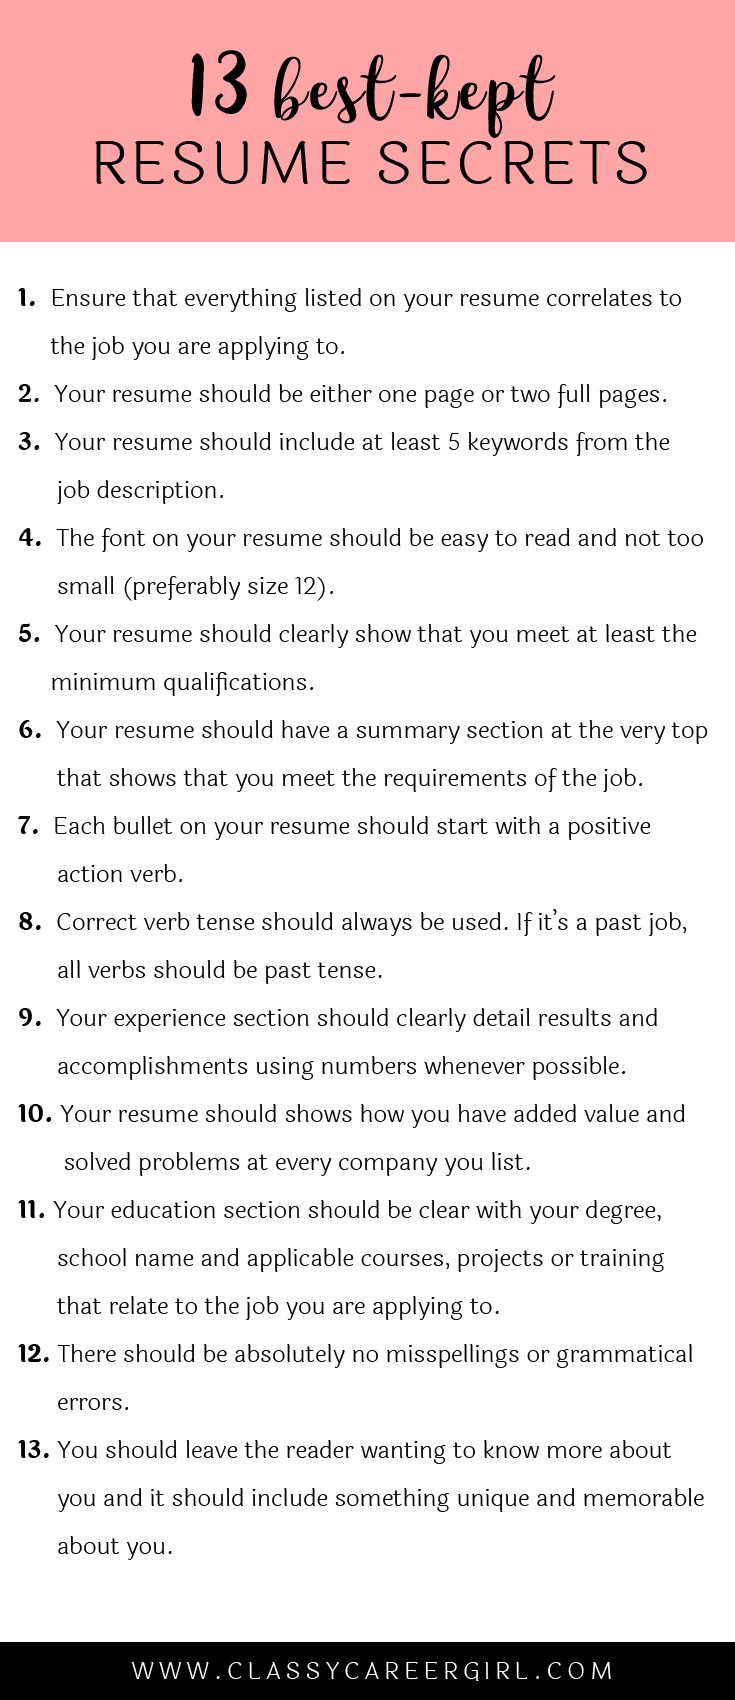 Opposenewapstandardsus  Winsome  Ideas About Resume On Pinterest  Cv Format Resume Cv And  With Fair Some Hiring Managers Will Toss Your Resume Out If You Dont Know These  With Delightful Resume Not Required Also Creating A Great Resume In Addition Resume For Elementary Teacher And Sample Resume For Project Manager As Well As Grant Writing Resume Additionally How To Write A Business Resume From Pinterestcom With Opposenewapstandardsus  Fair  Ideas About Resume On Pinterest  Cv Format Resume Cv And  With Delightful Some Hiring Managers Will Toss Your Resume Out If You Dont Know These  And Winsome Resume Not Required Also Creating A Great Resume In Addition Resume For Elementary Teacher From Pinterestcom